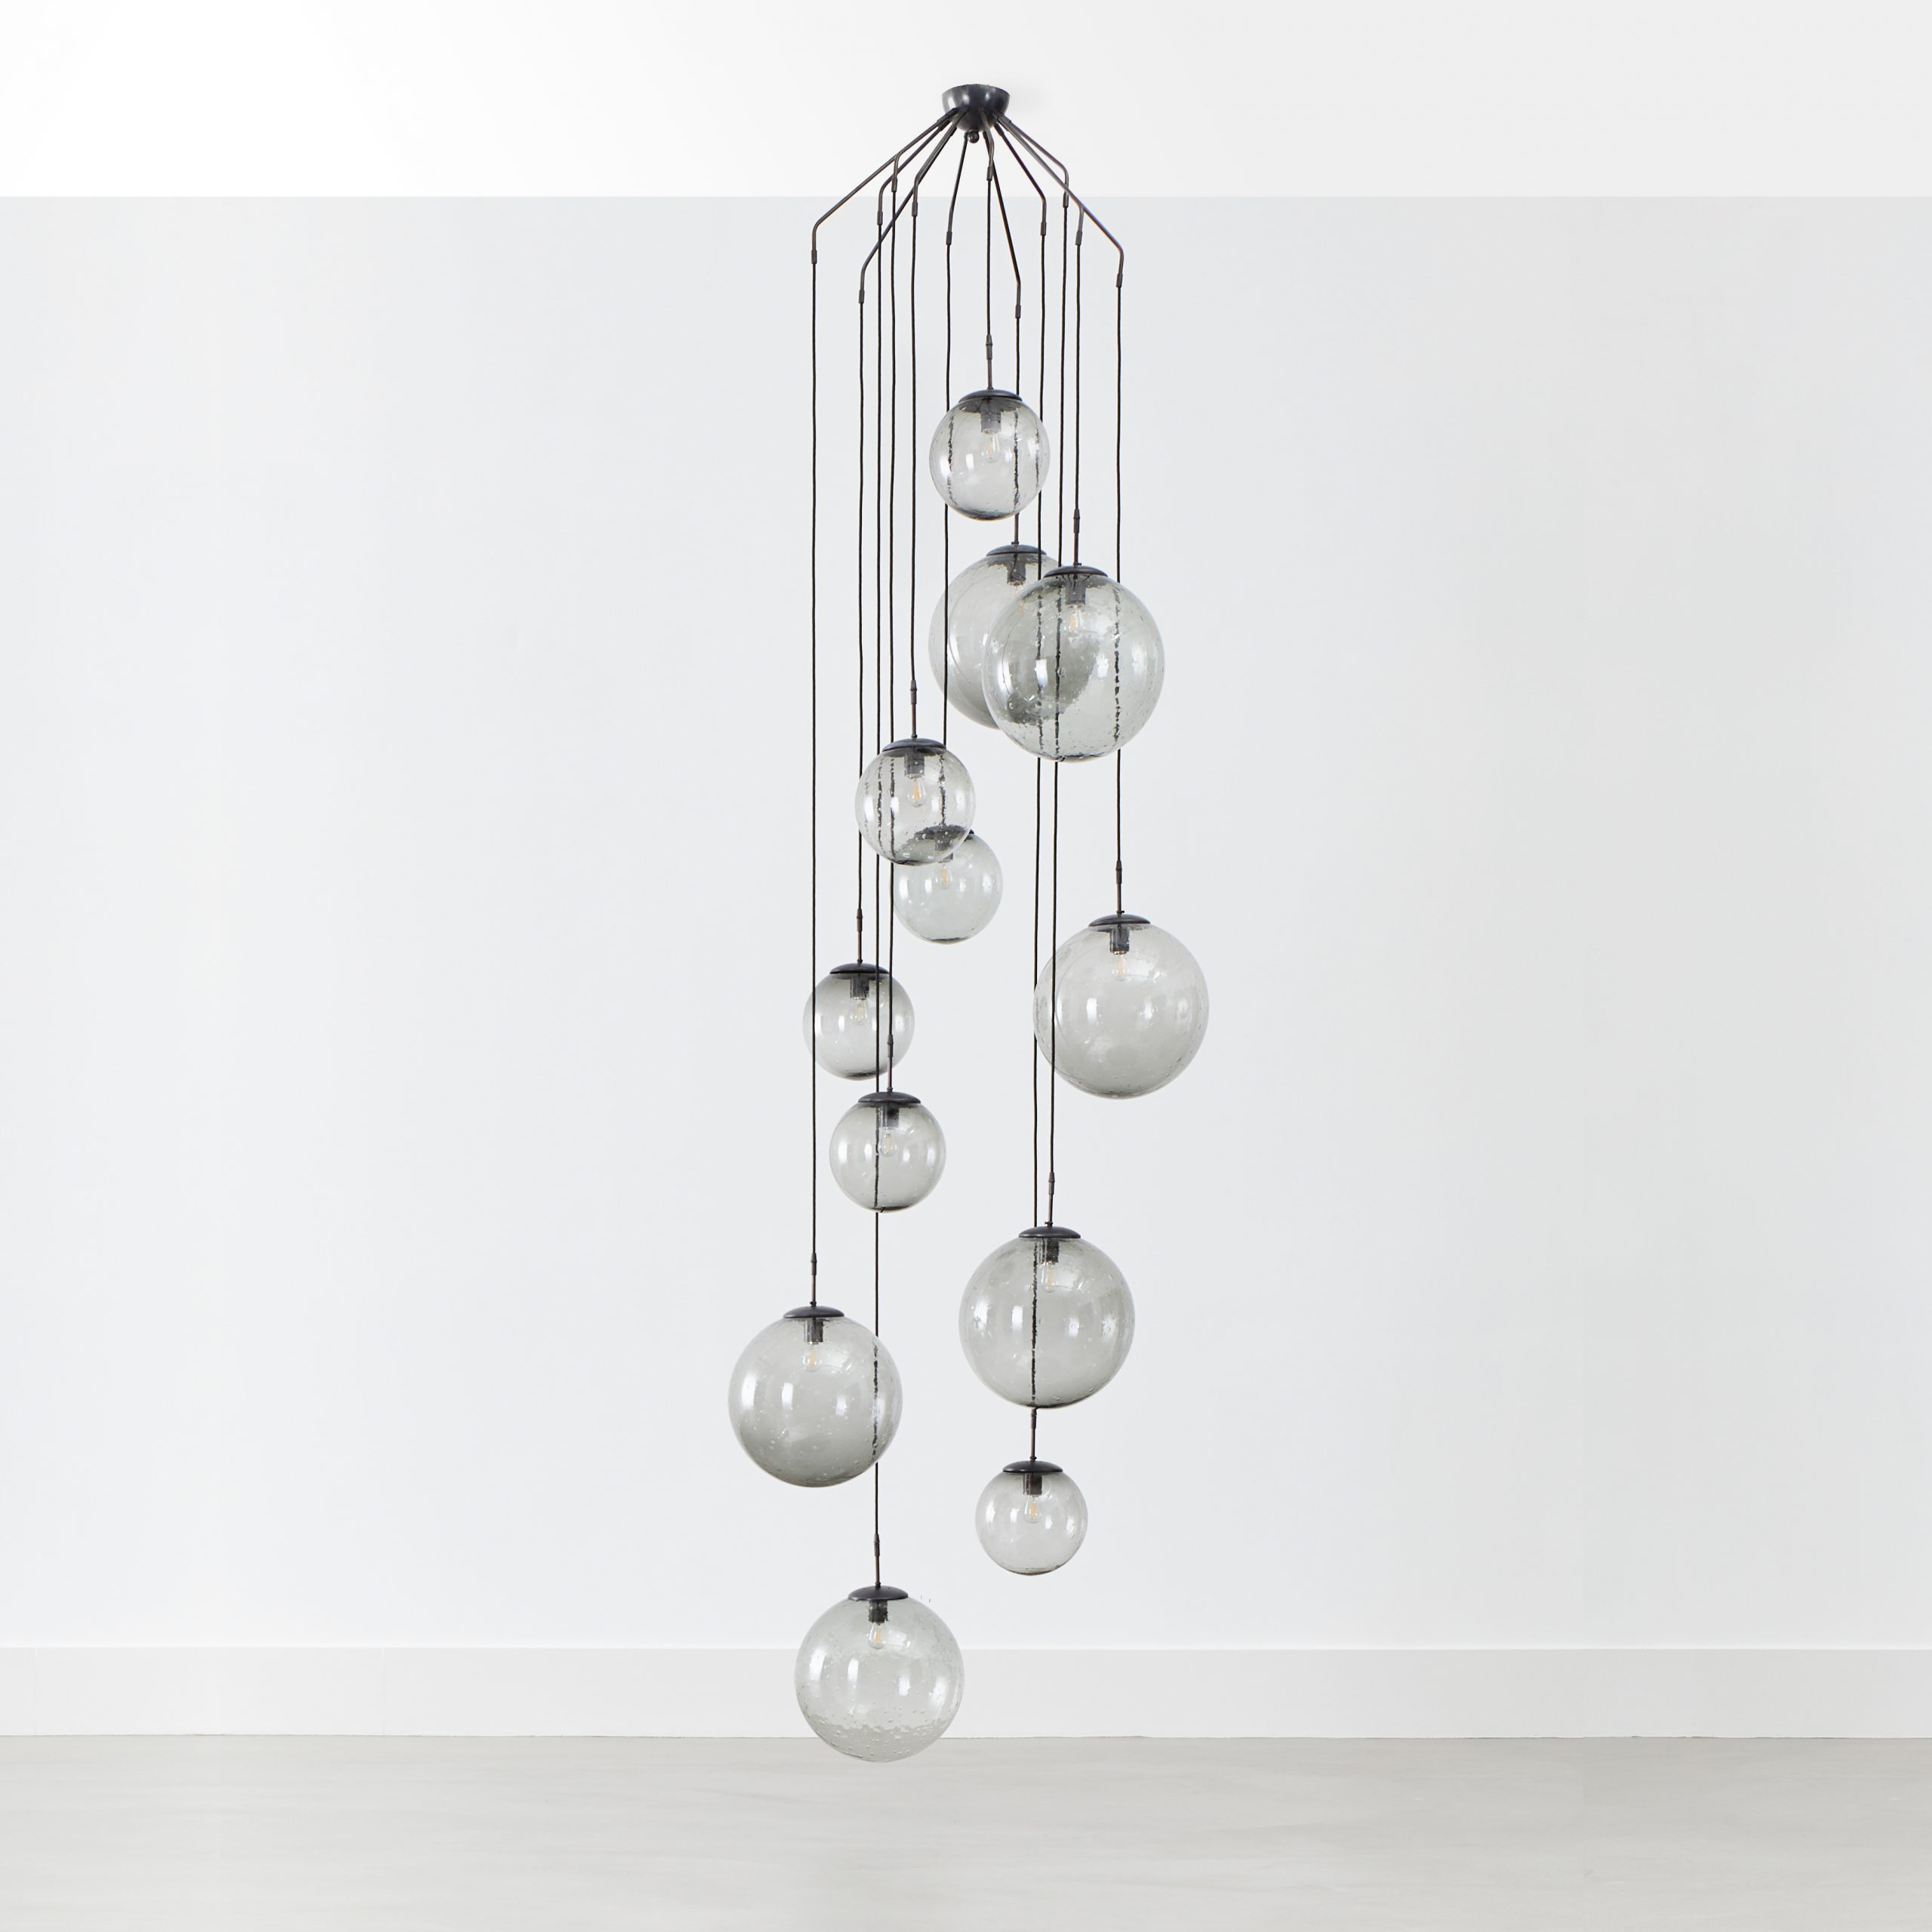 Celestial Chandelier by COUP STUDIO